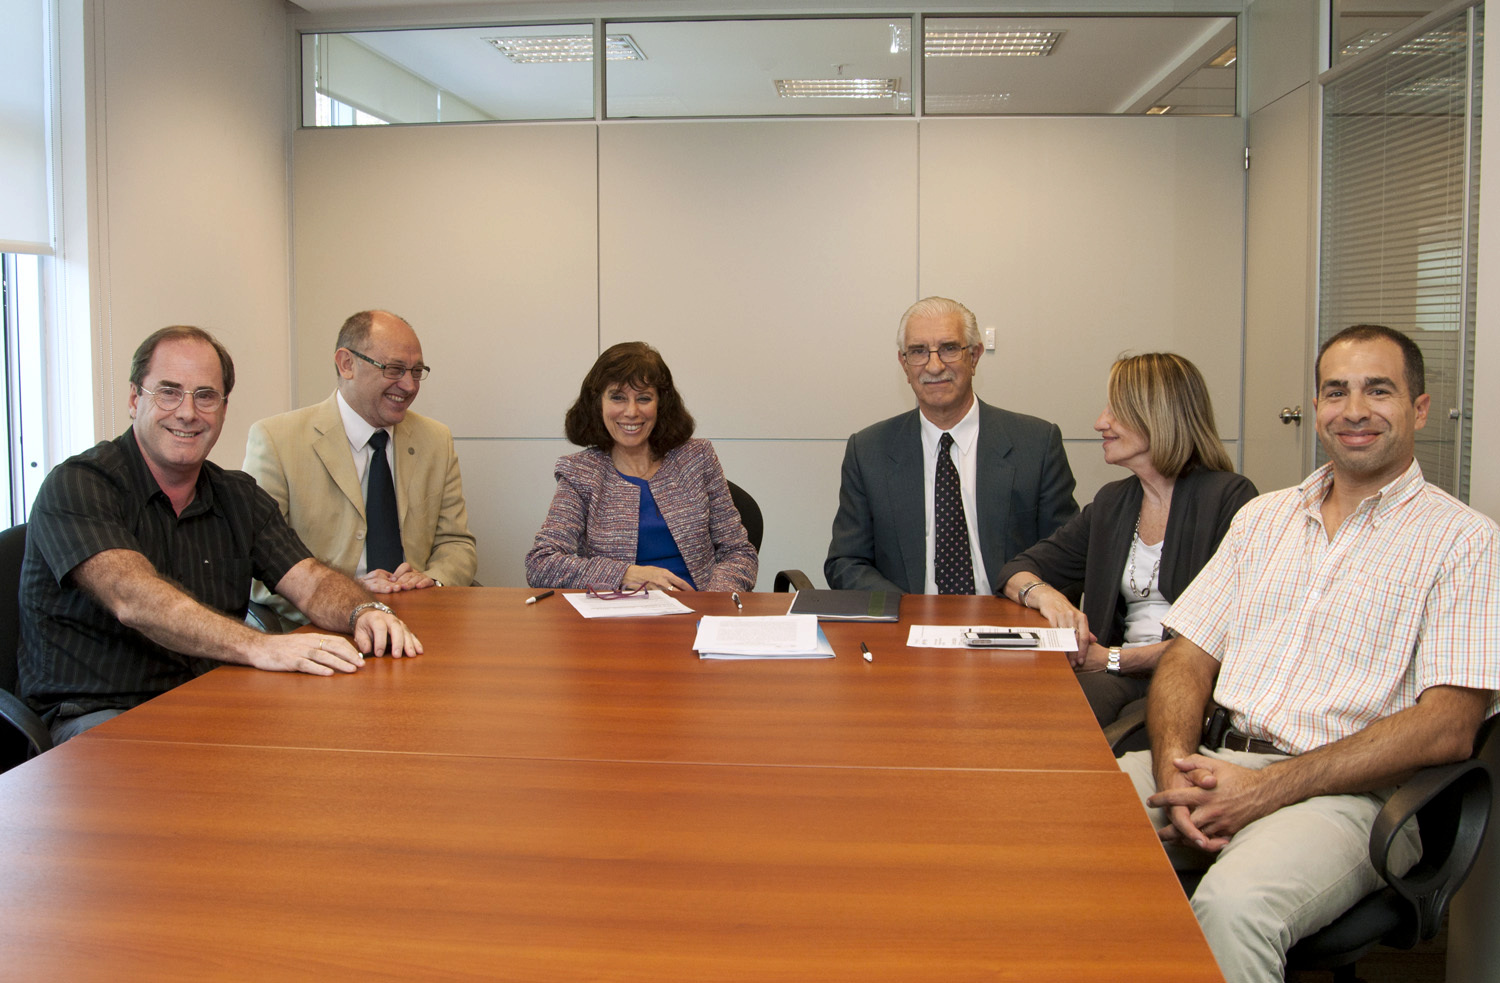 The Minister of Science received New Zealand authorities